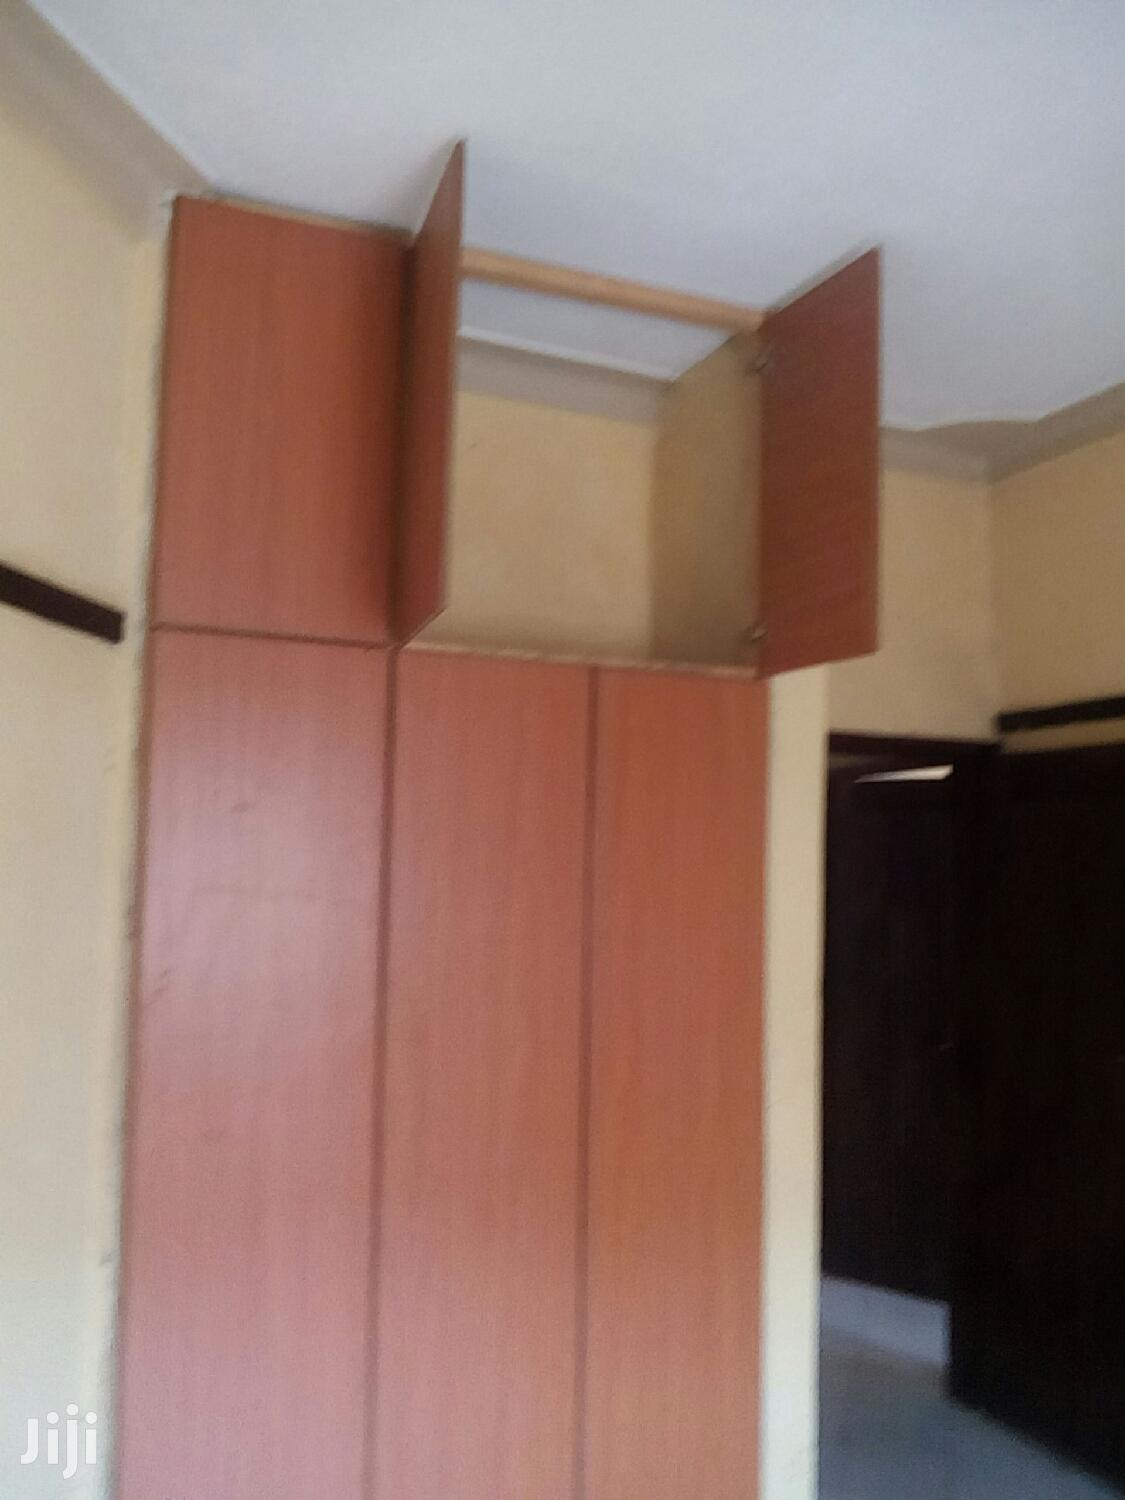 Bukoto Kisasi Road Double Rooms For Rent | Houses & Apartments For Rent for sale in Kampala, Central Region, Uganda